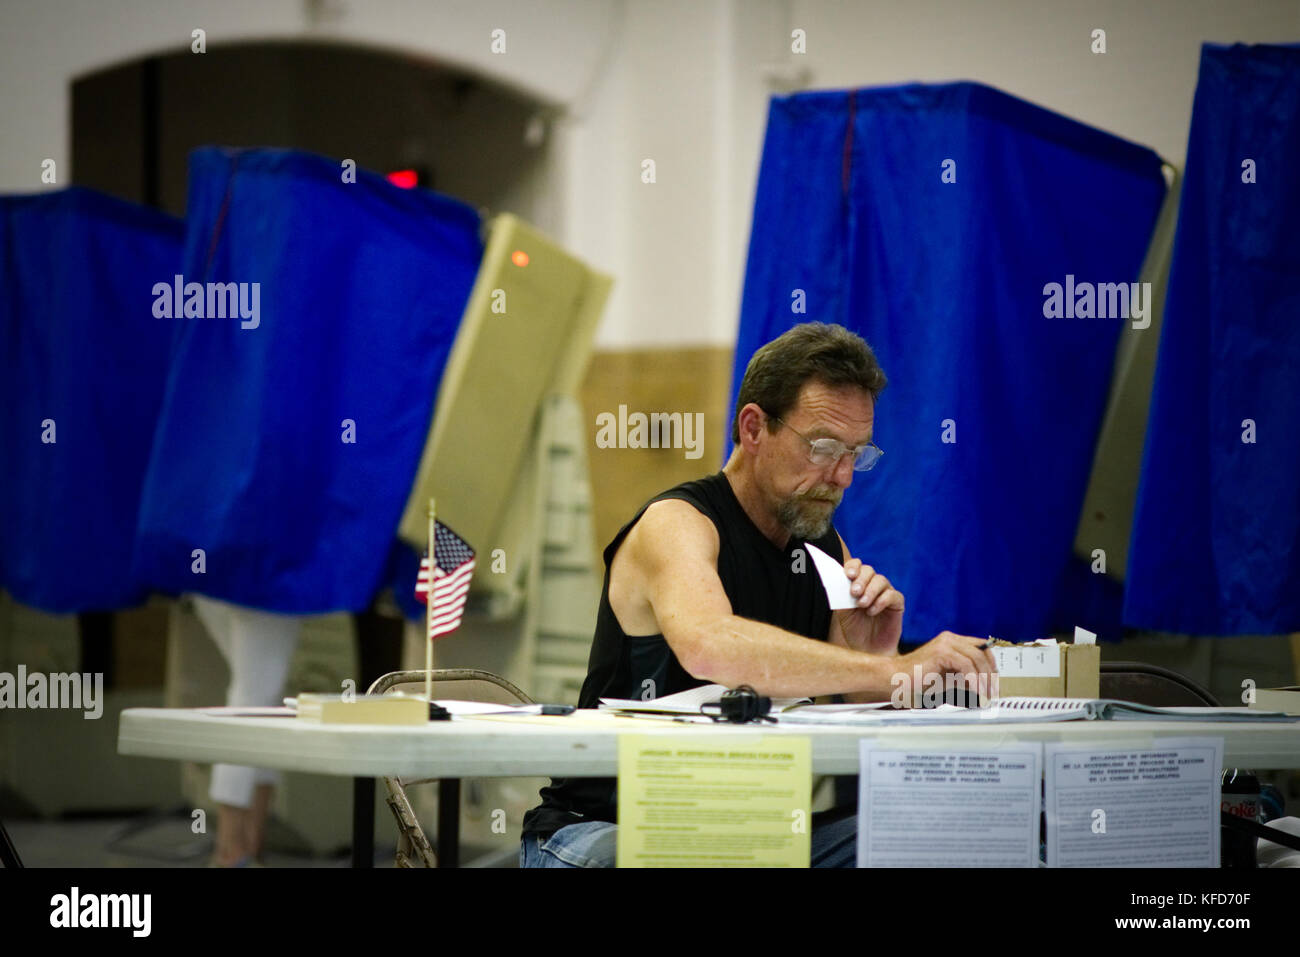 On Election Day a poll worker sits behind a table at a Philadelphia, PA polling station. - Stock Image